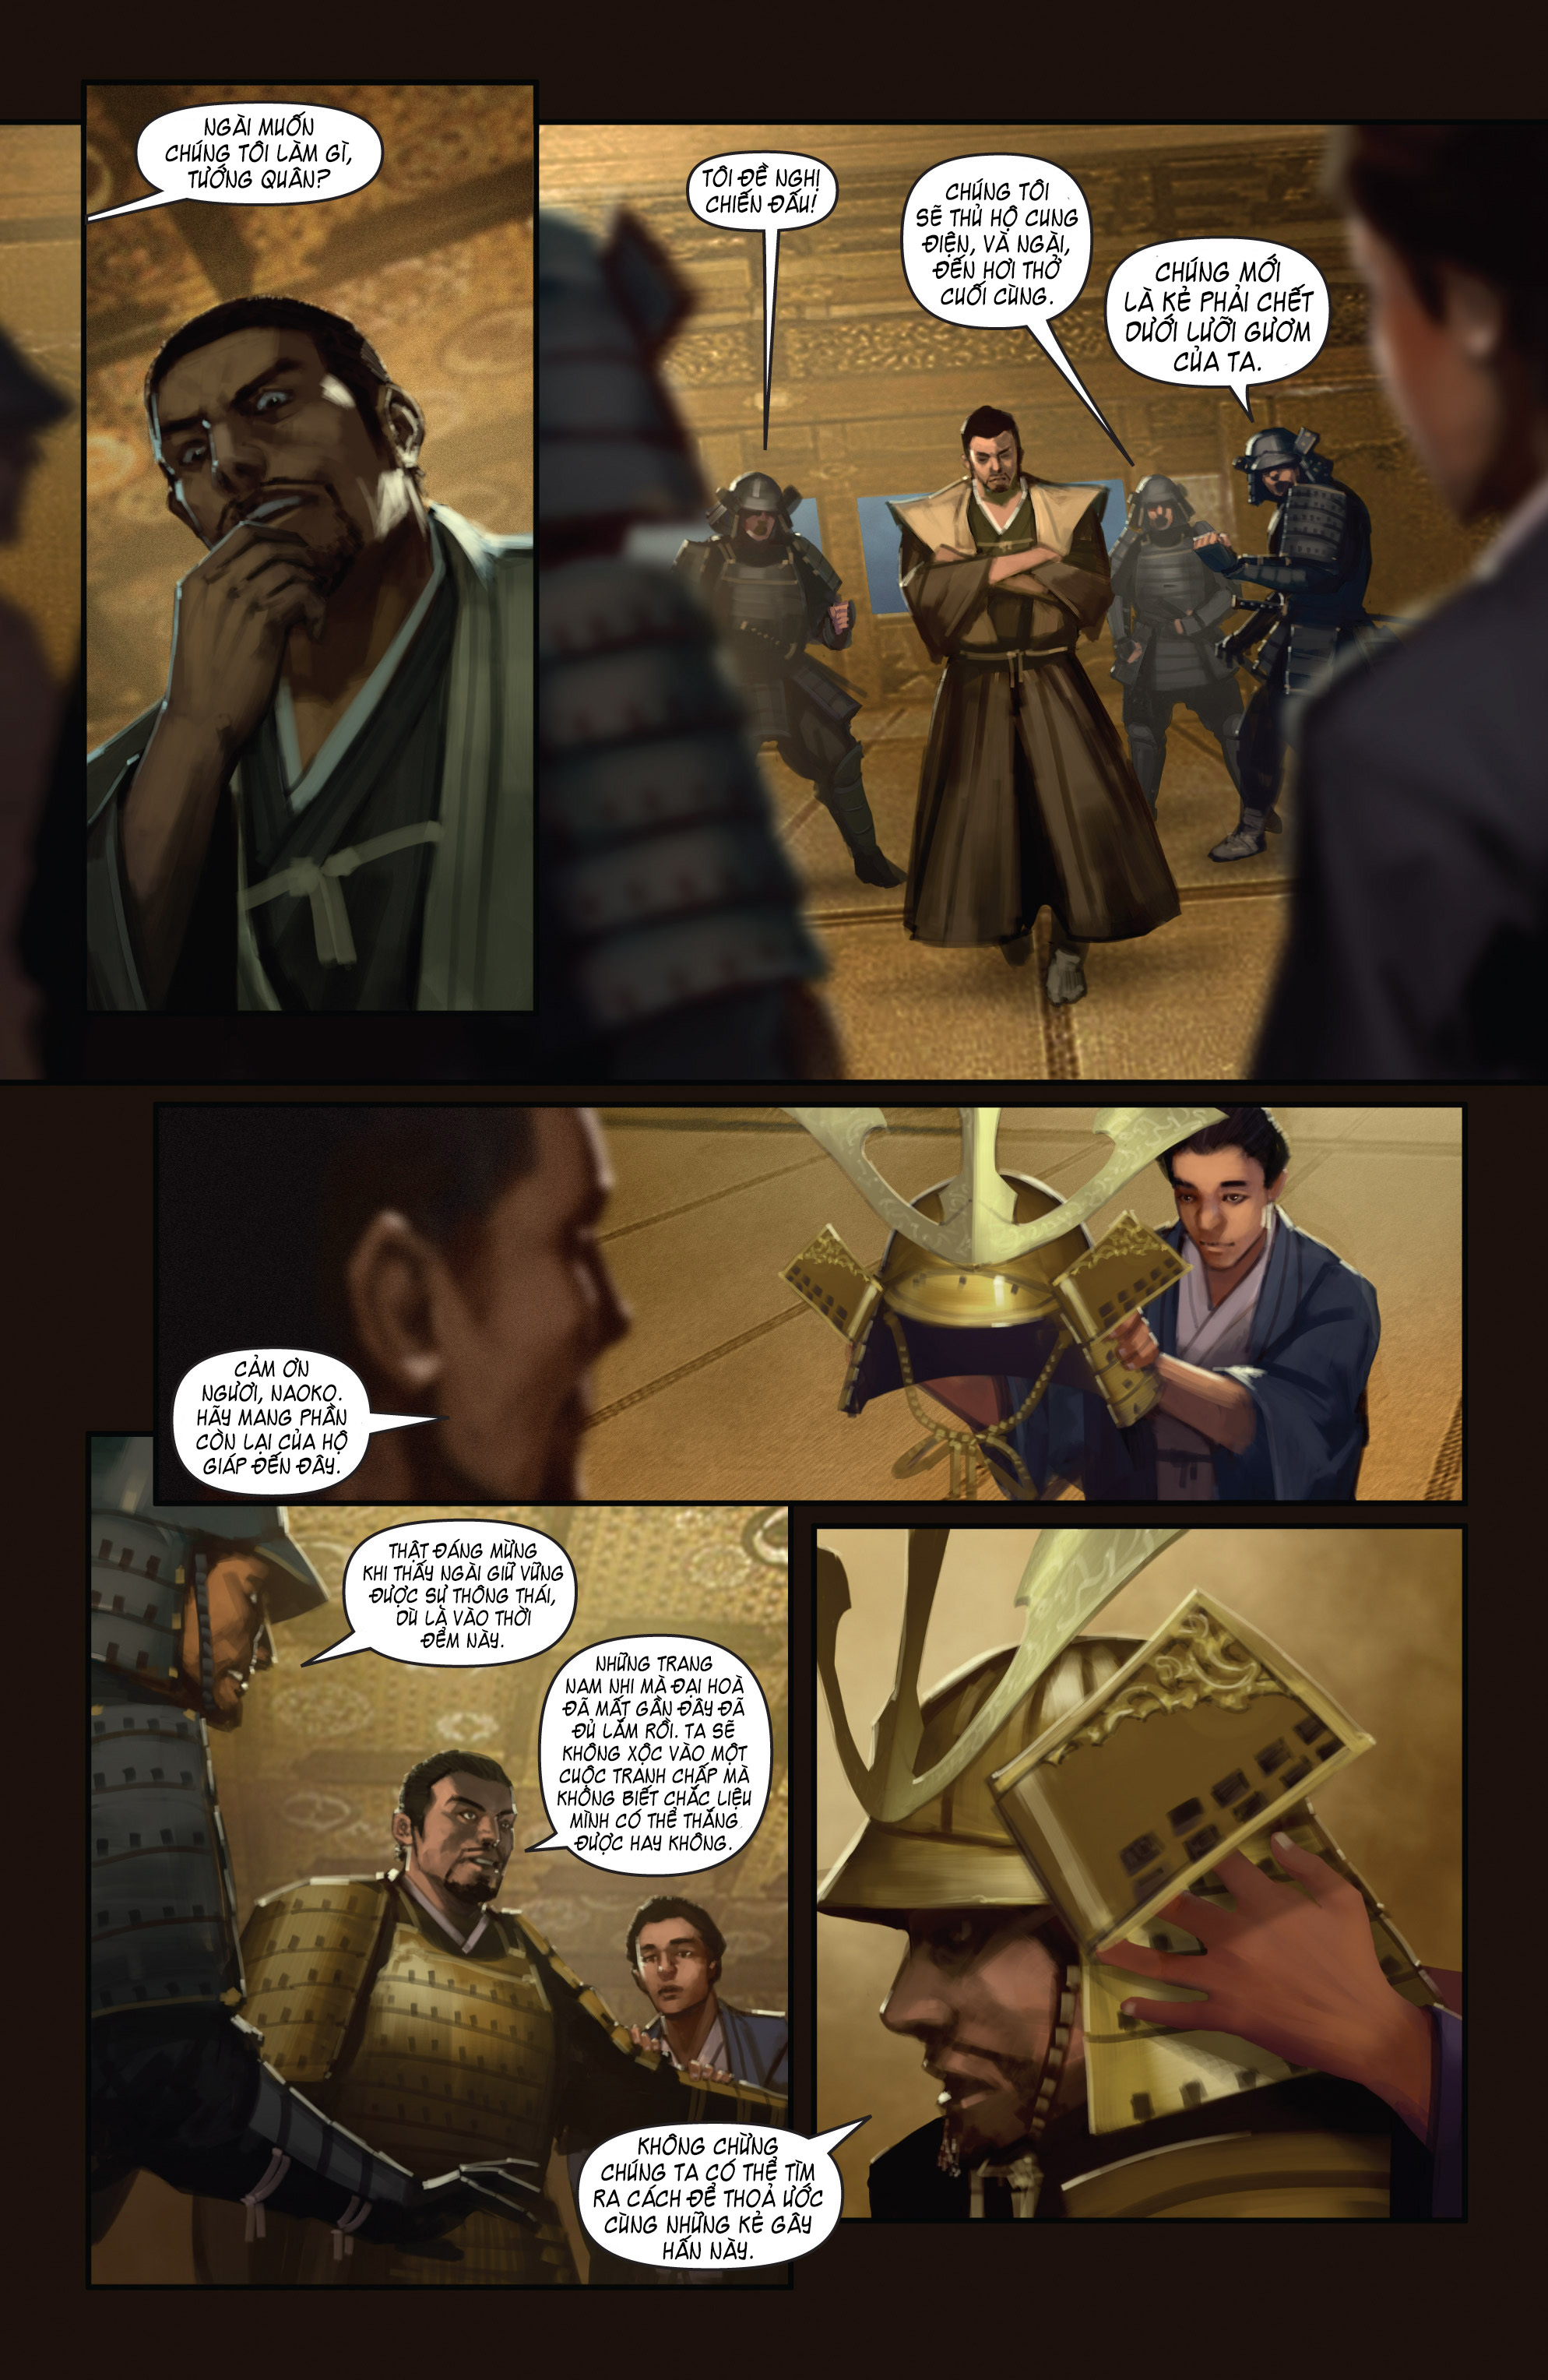 BUSHIDO - THE WAY OF THE WARRIOR chapter 5 - end trang 7